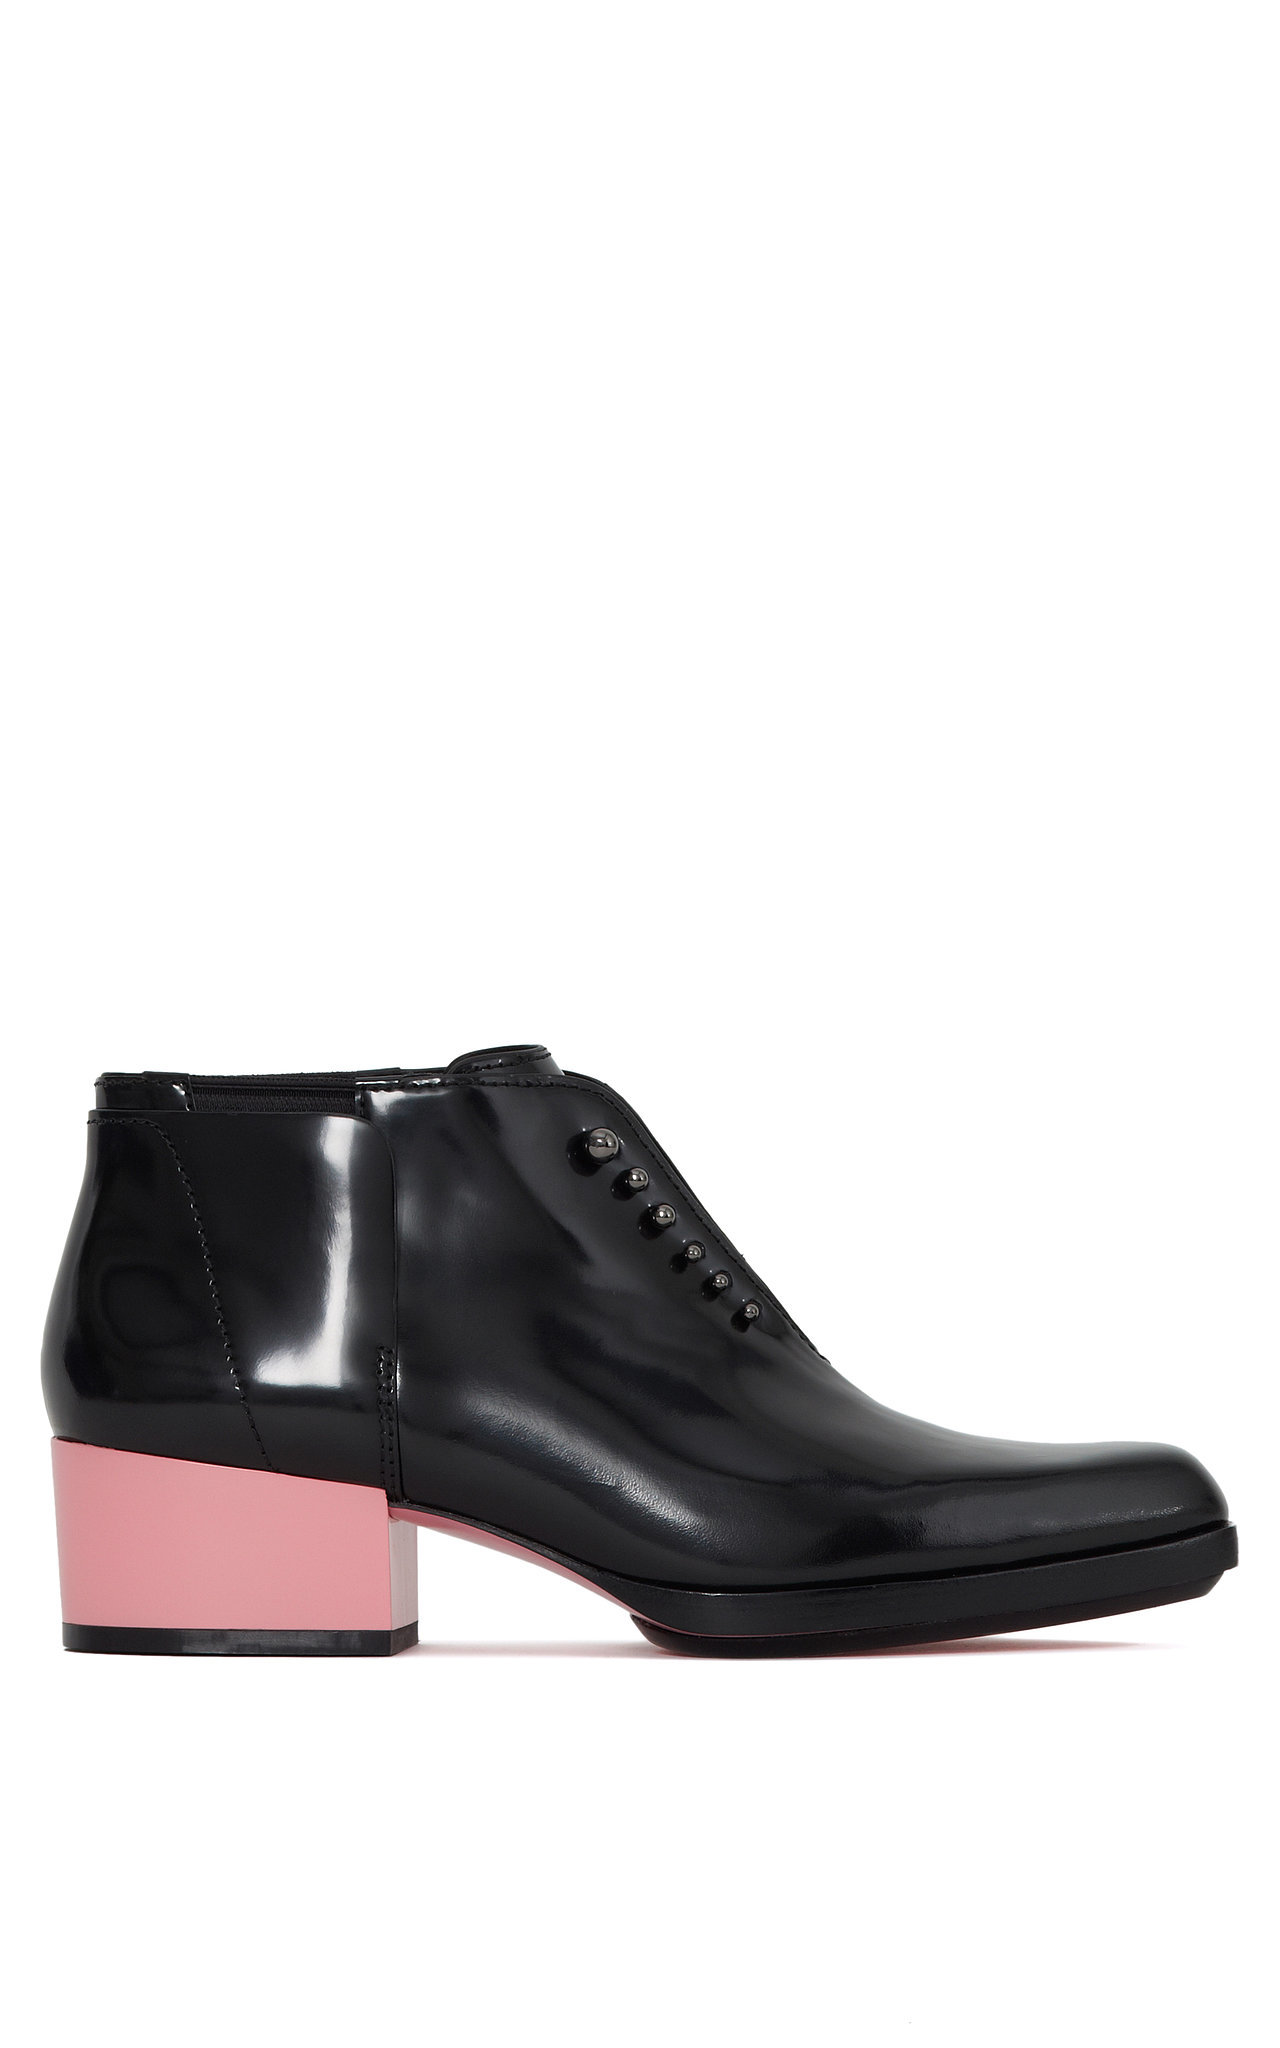 3.1 Phillip Lim Fall 2014 Shoes